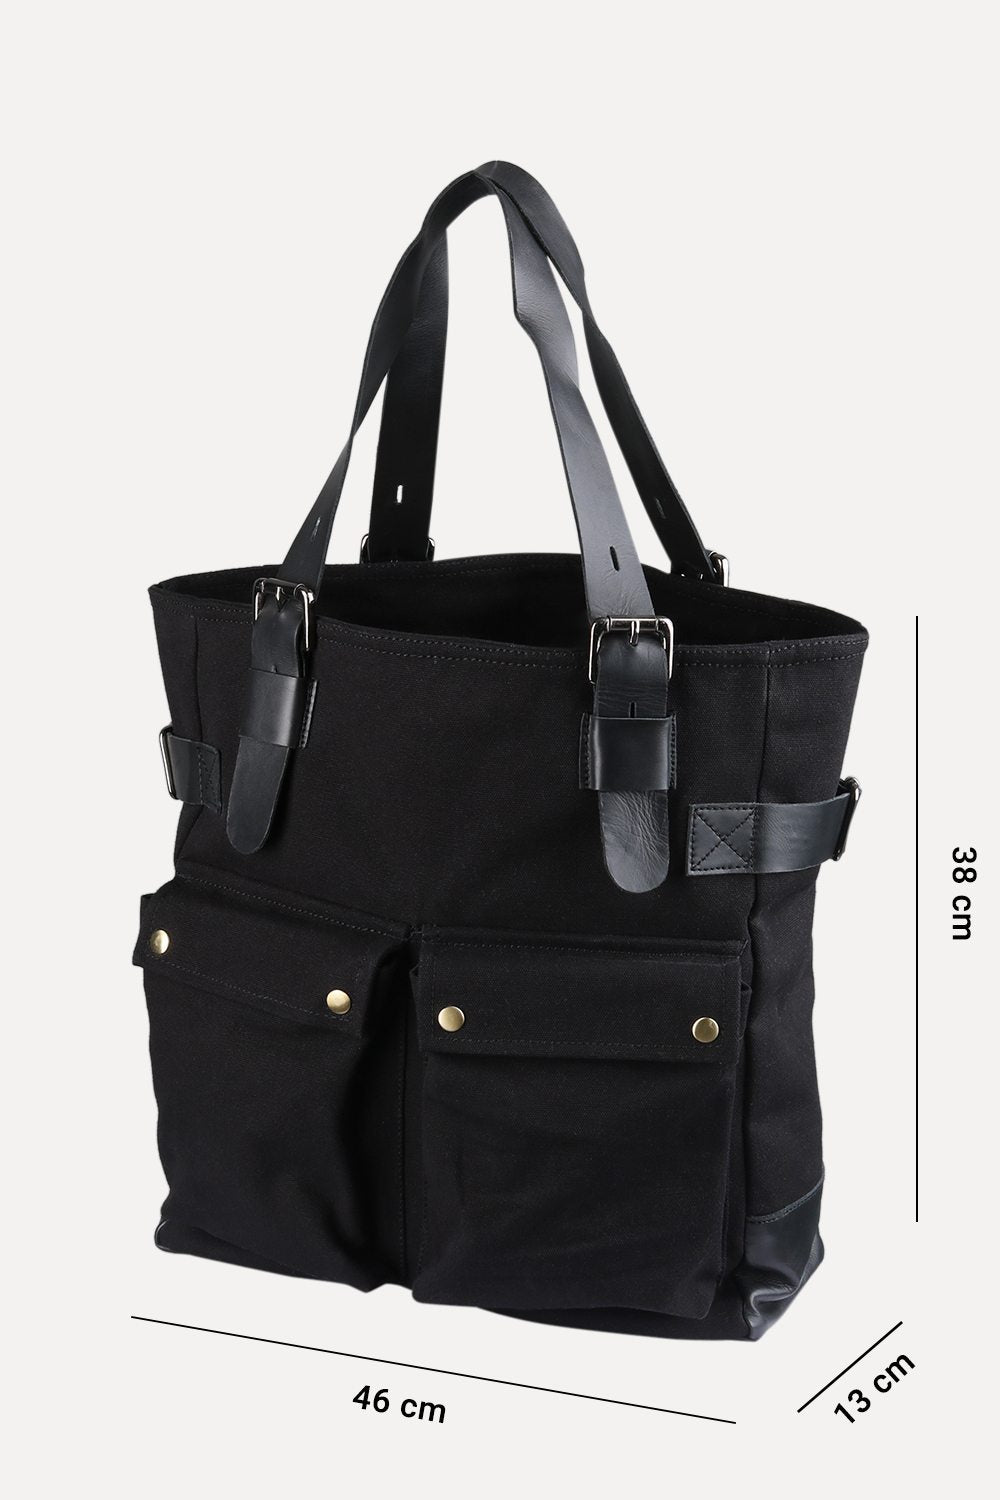 474cf6bcecd6 Buy Online Black Twill Canvas Tote Bags Online in India at Zobello